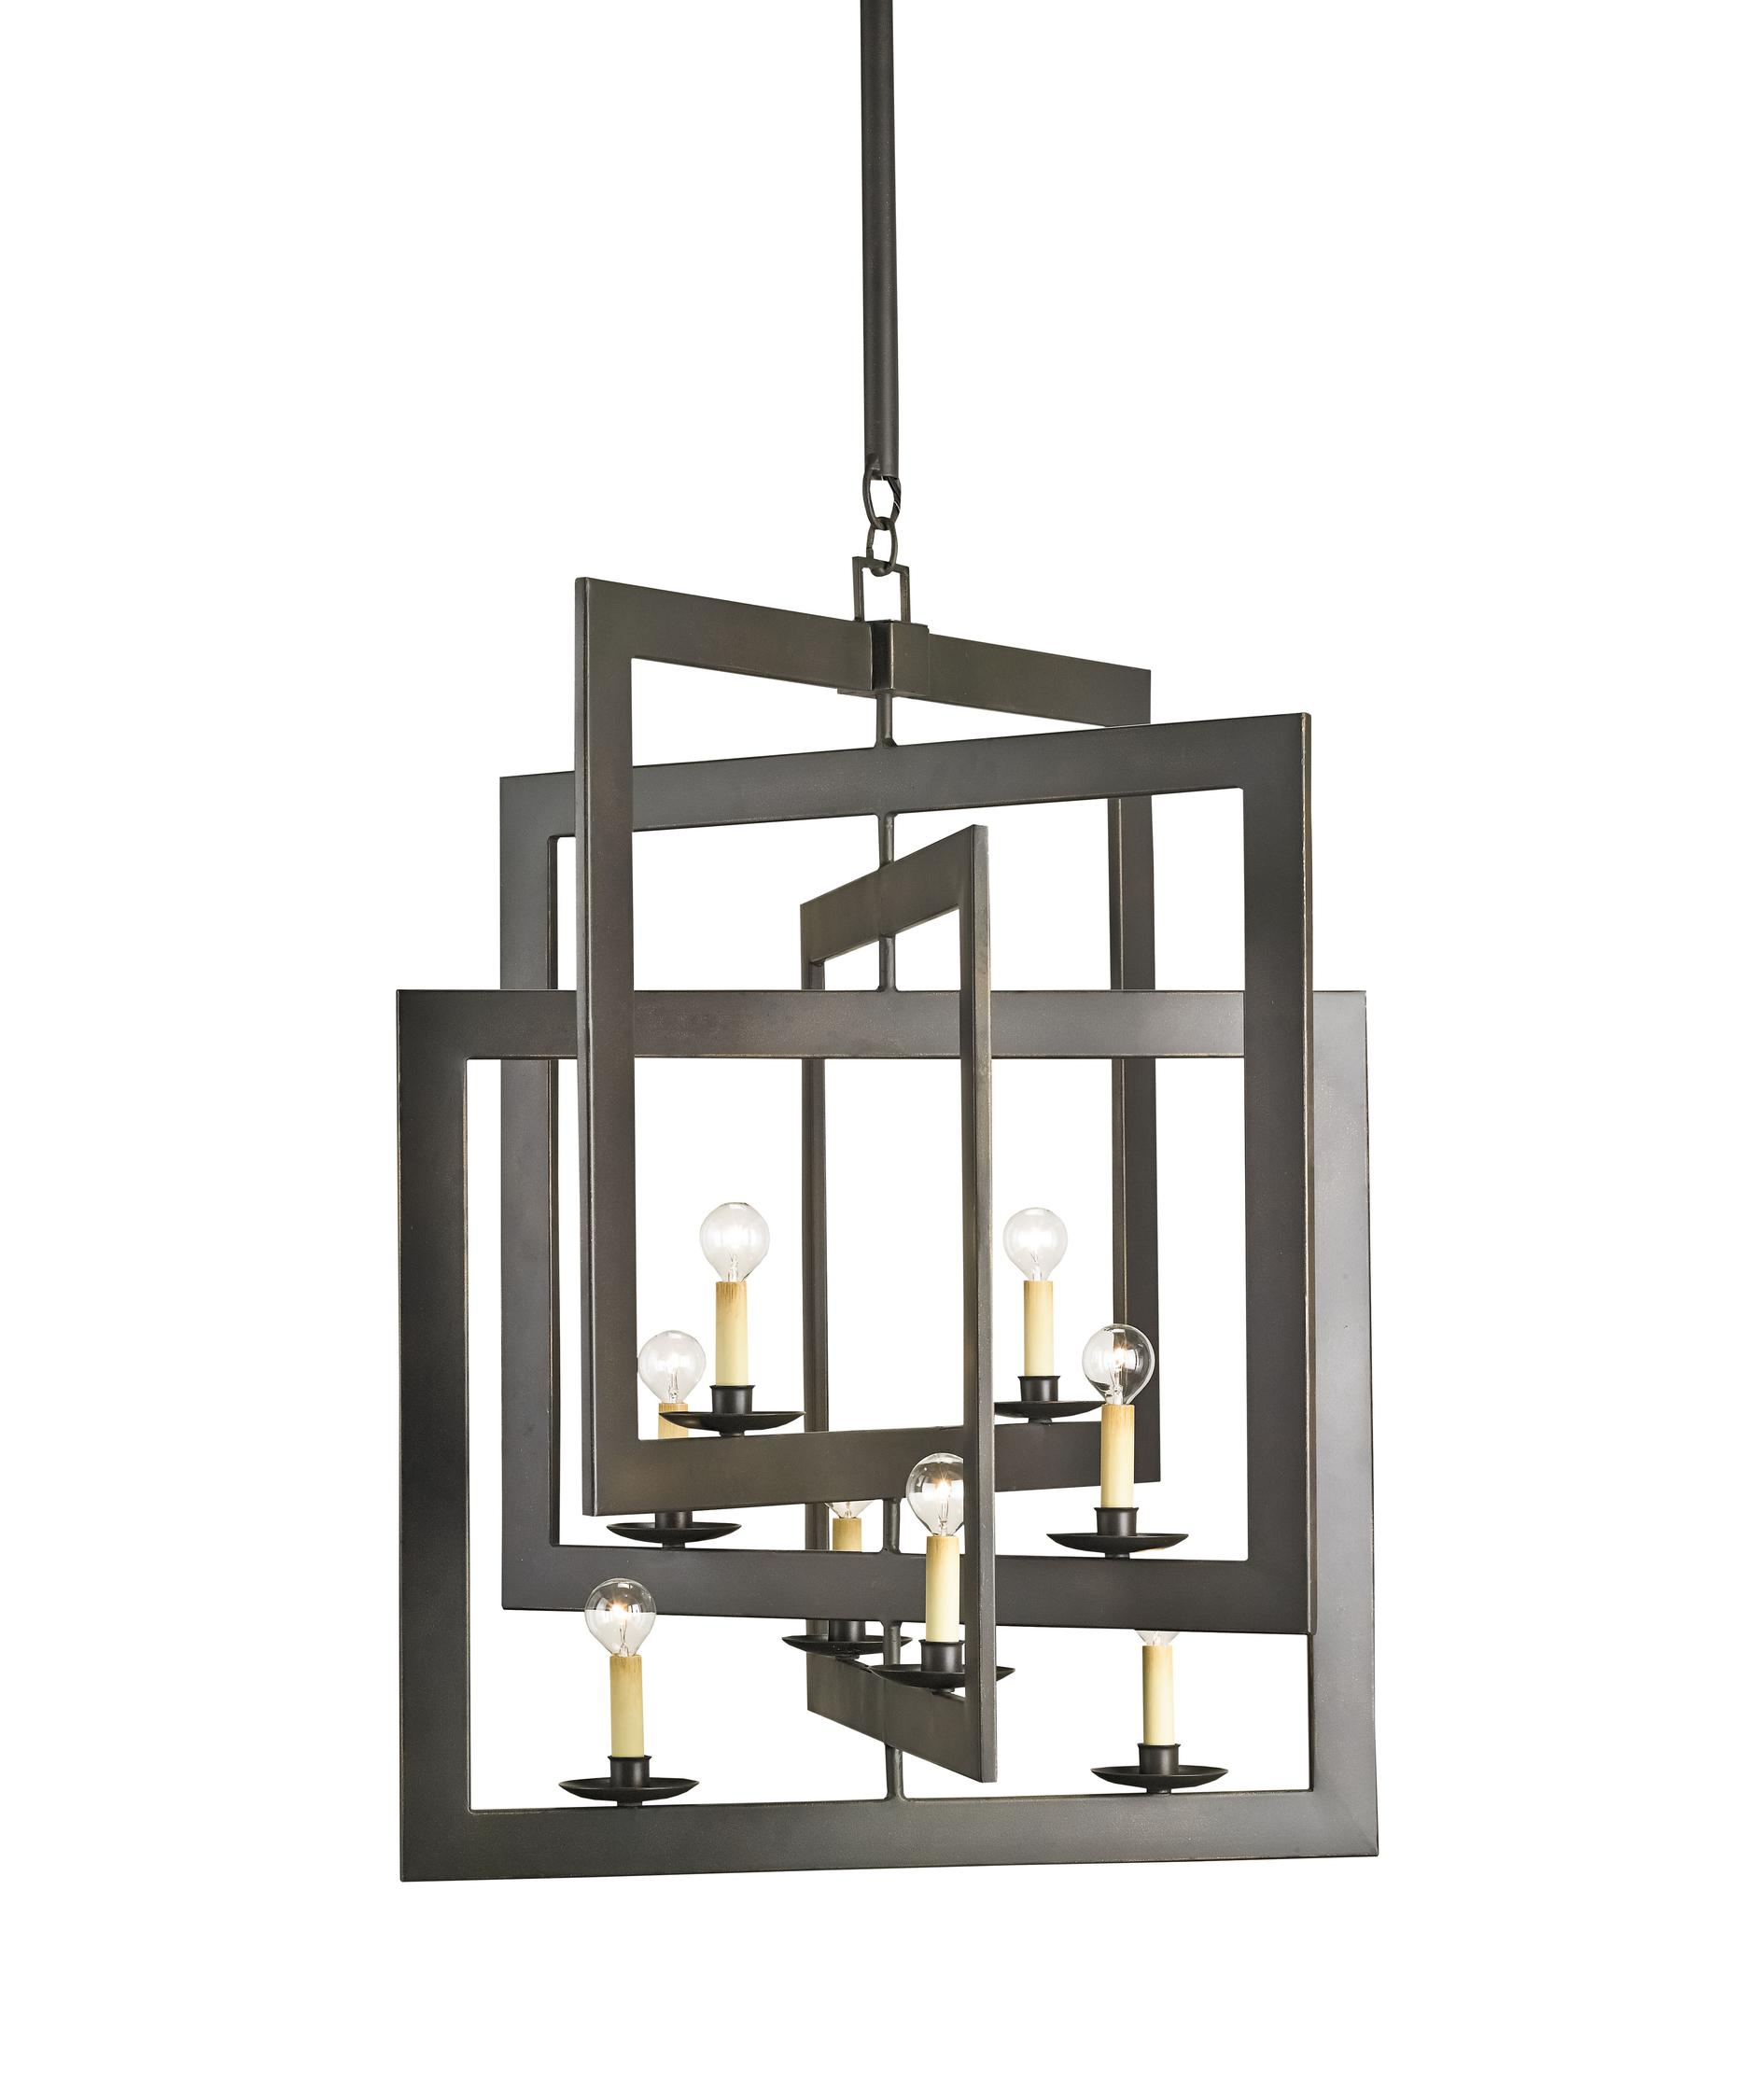 currey and company lighting fixtures. shown in bronze gold finish currey and company lighting fixtures